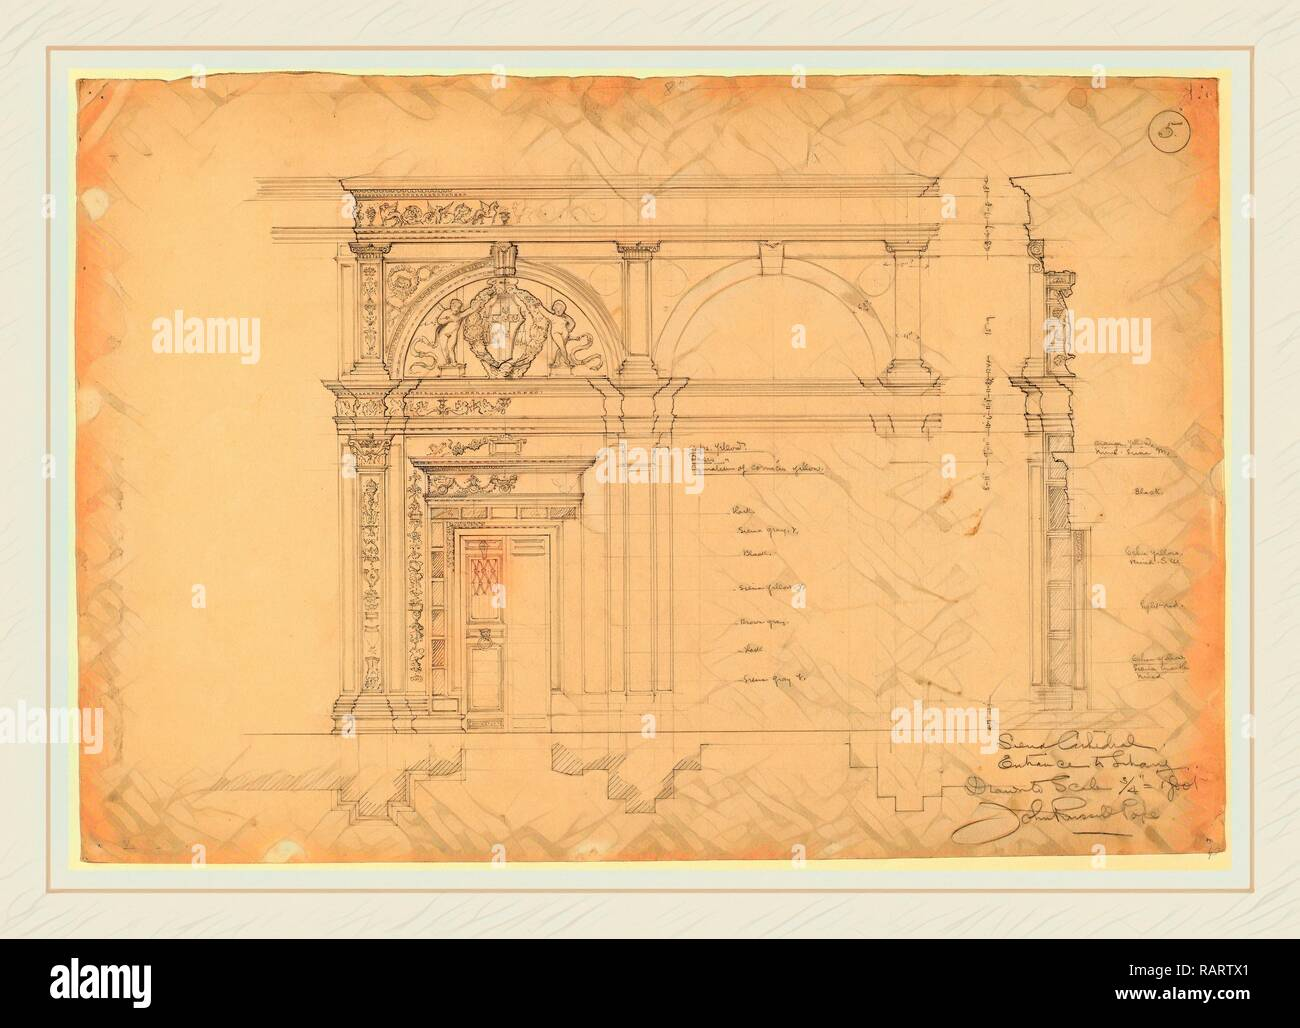 John Russell Pope, Siena Cathedral, Entrance to Library, American, 1874-1937, c. 1896, graphite. Reimagined - Stock Image